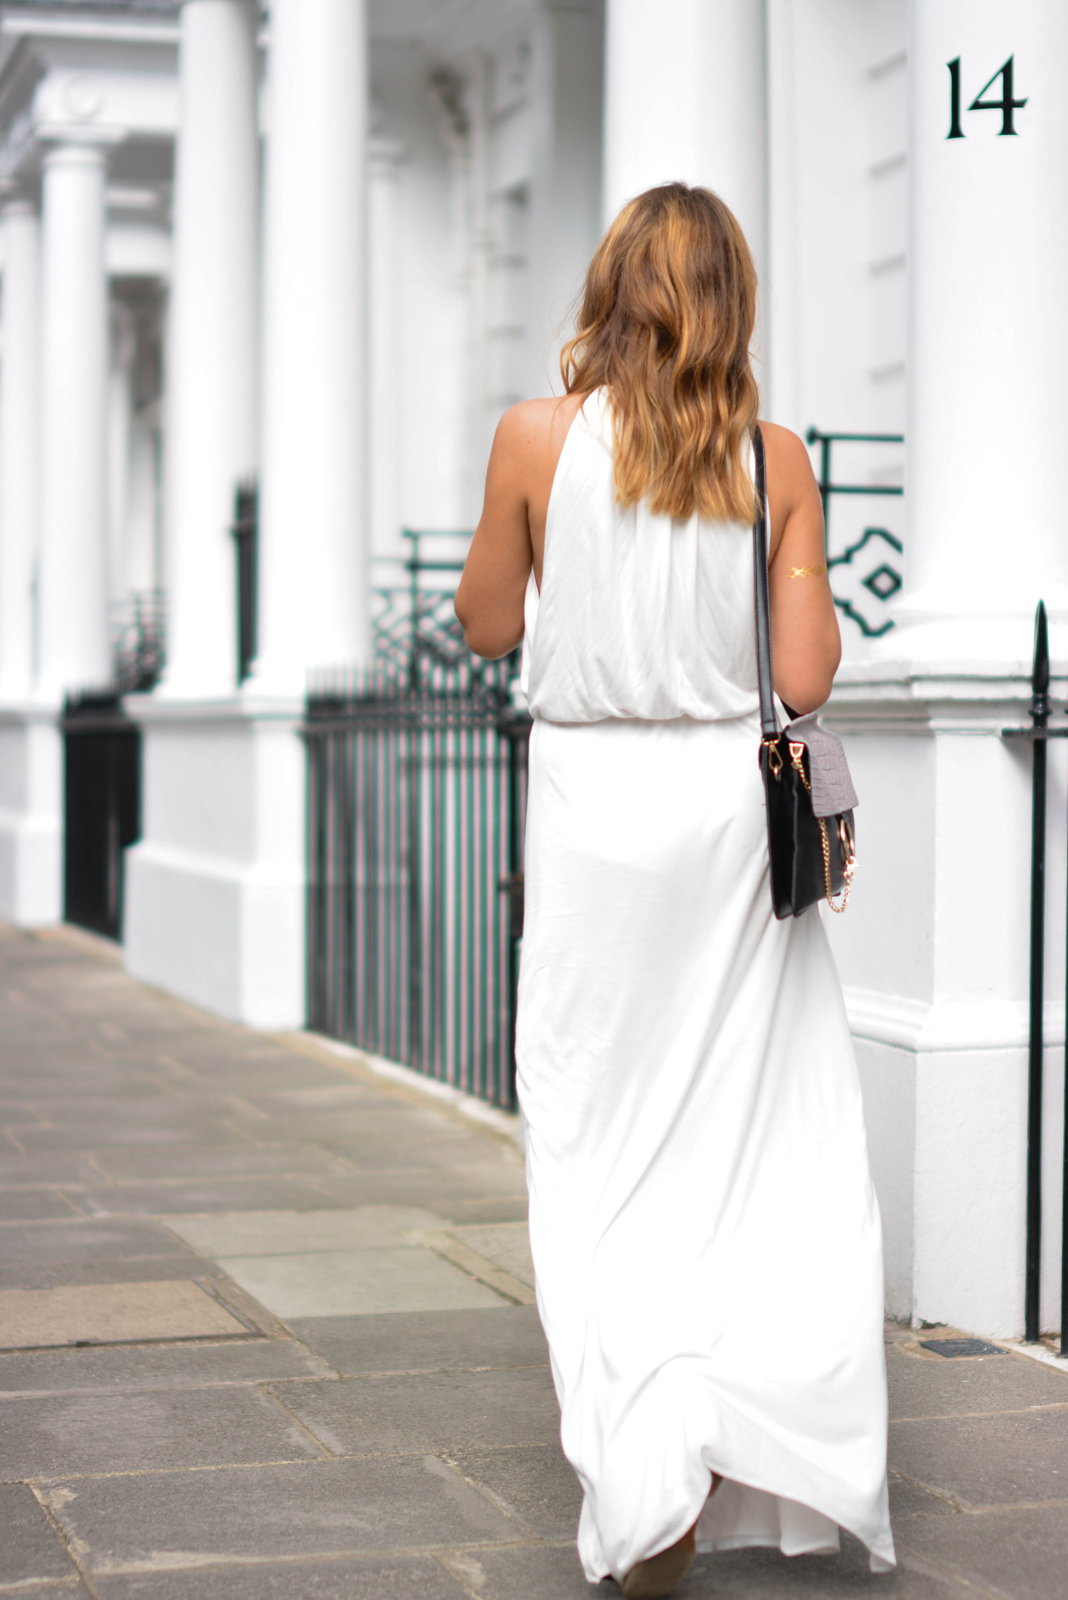 EJSTYLE - Melissa Odabash Rachel white grecian dress, gold arm tattoo, Chloe Faye style dupe bag